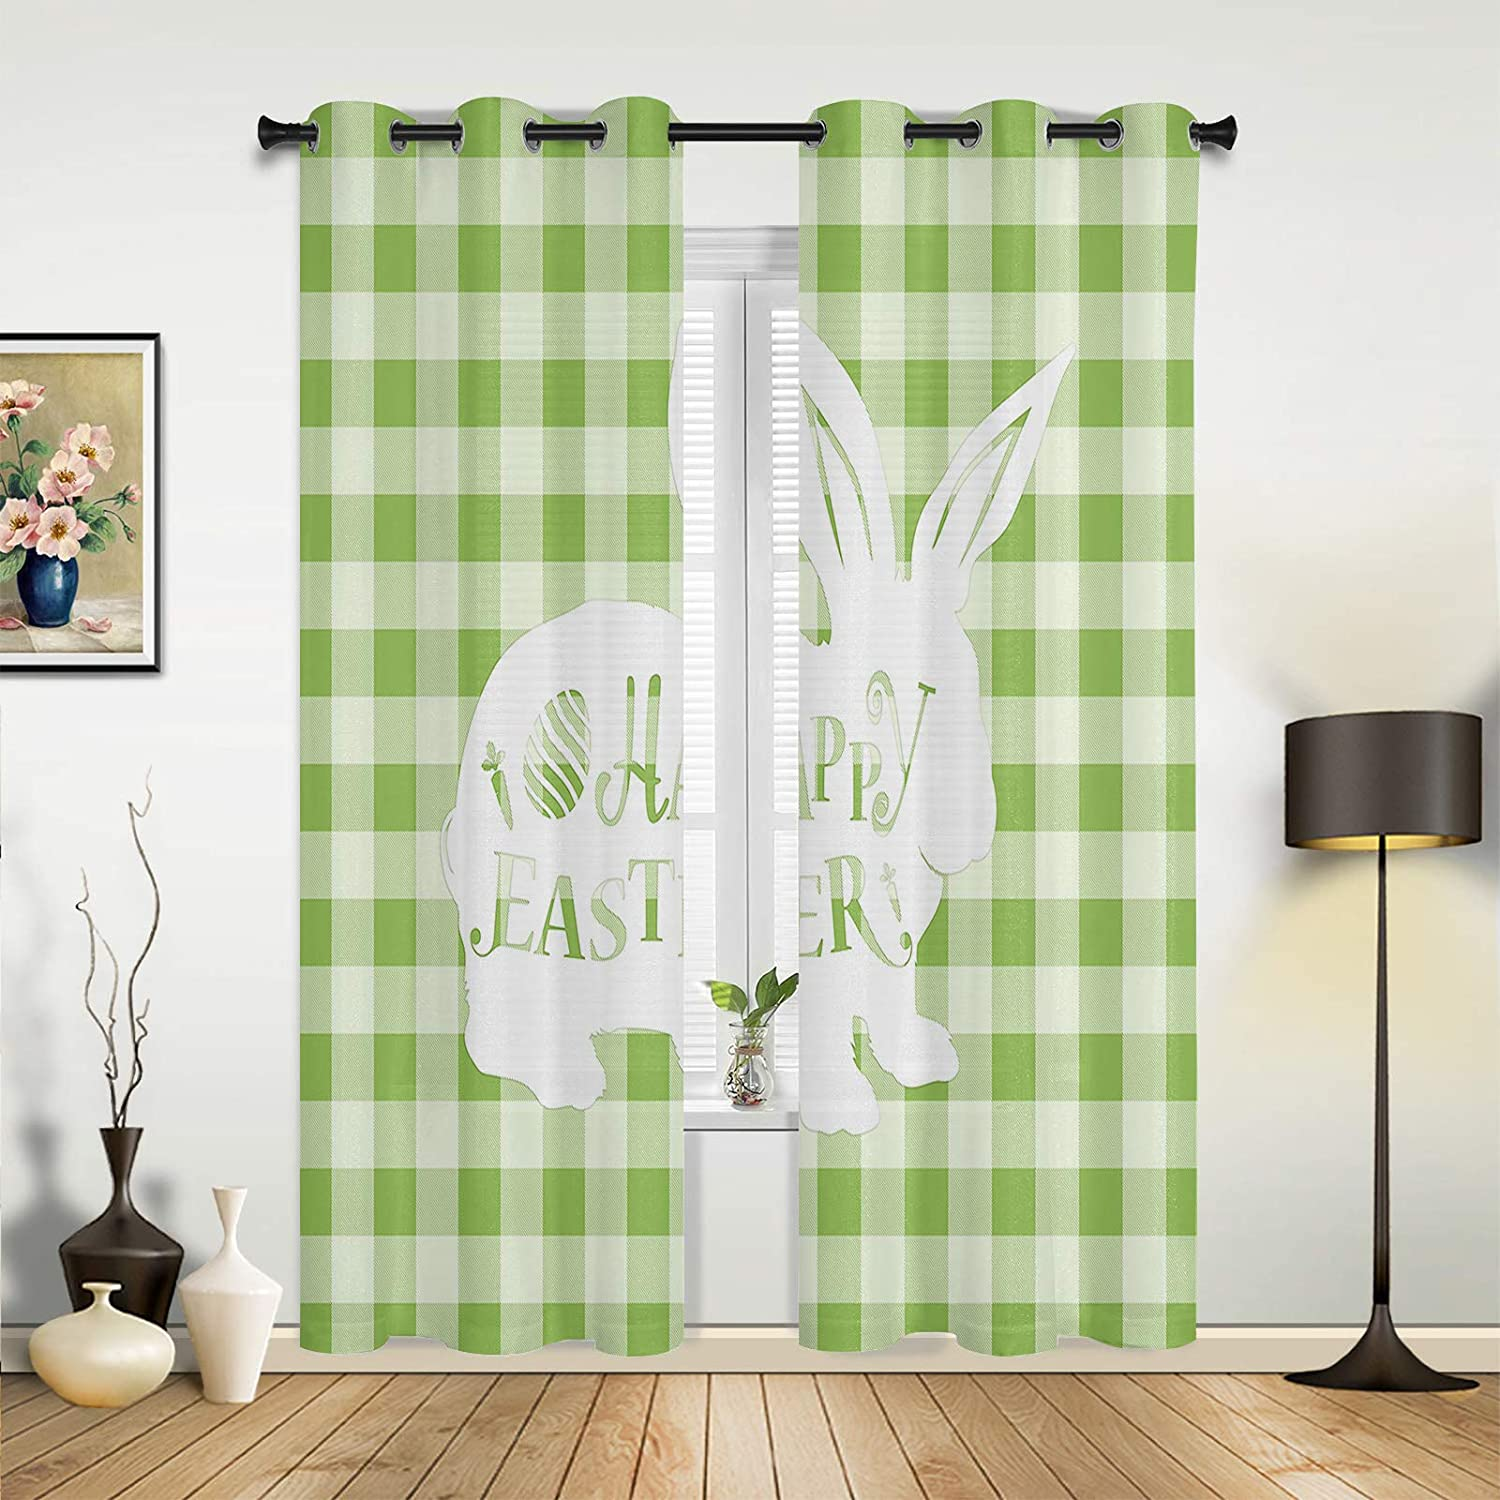 Window Sheer Curtains for Bedroom Room Living Happy specialty shop Easter Cute 67% OFF of fixed price